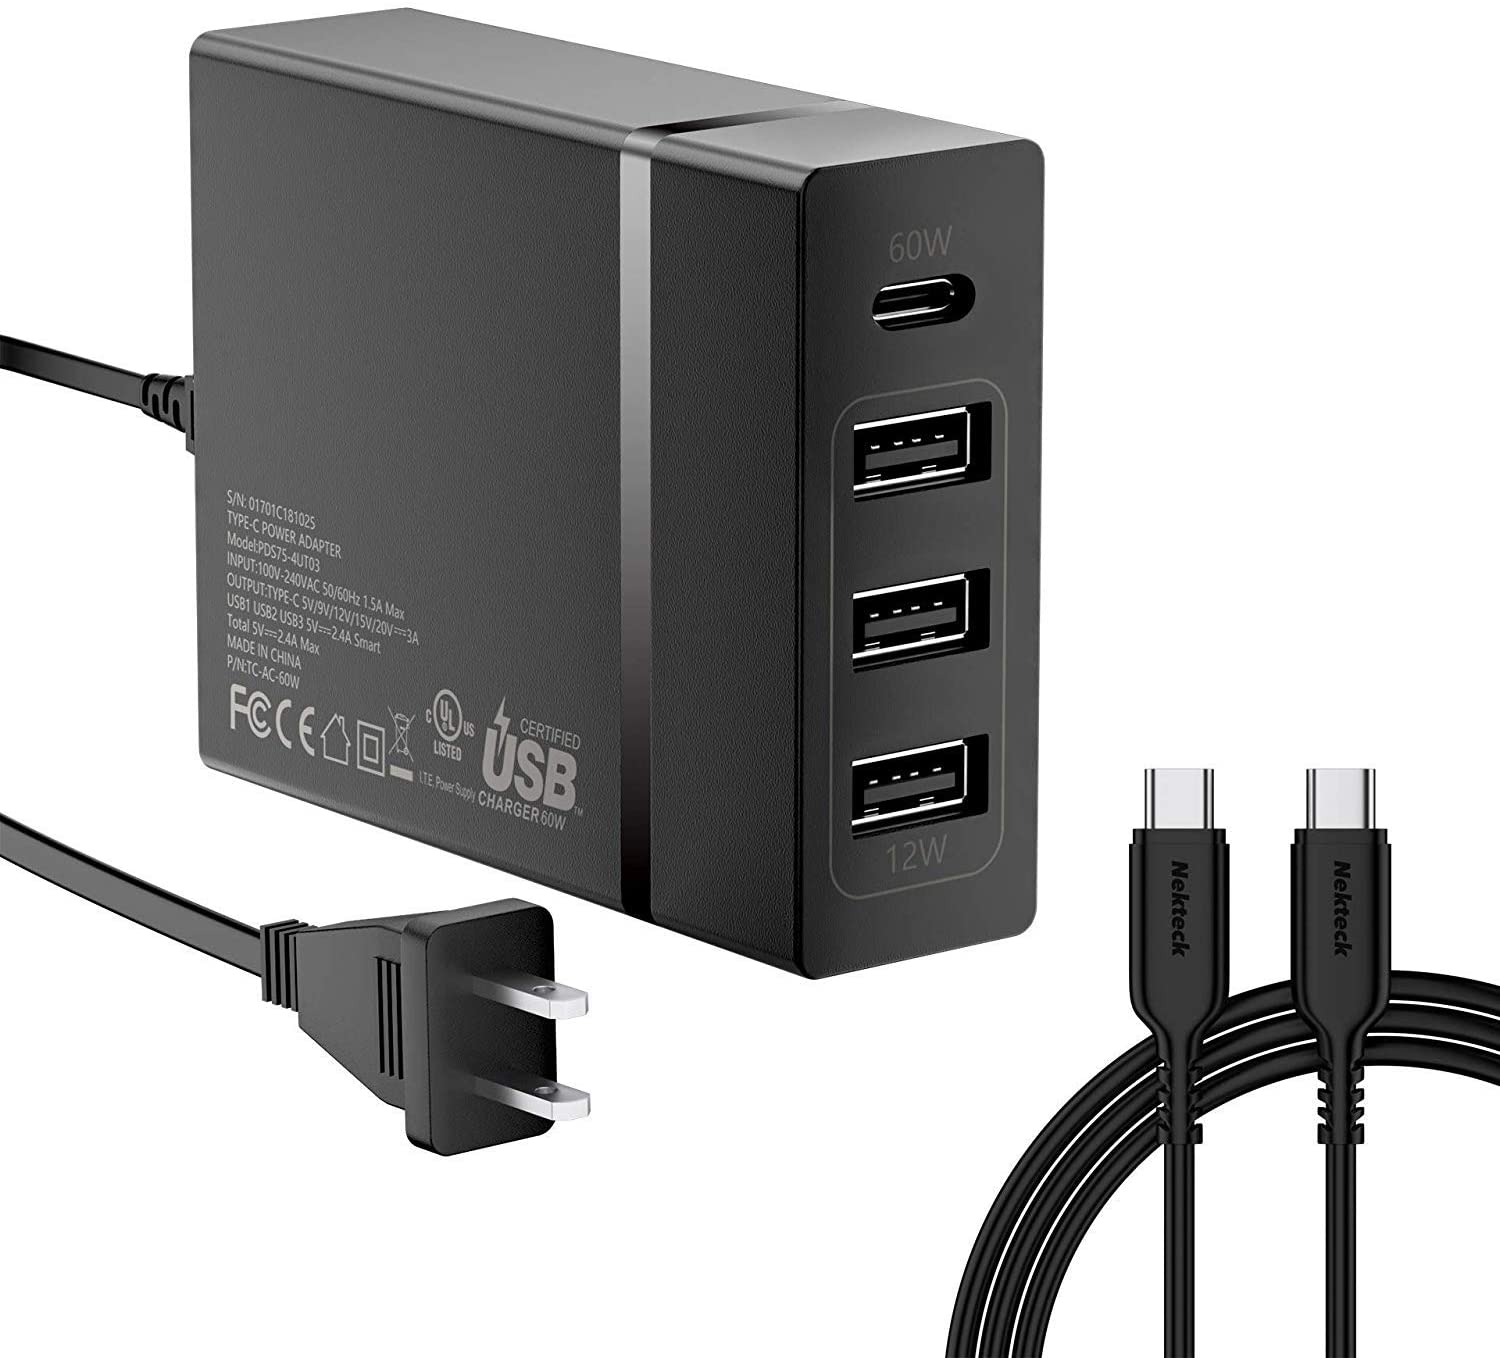 USB C Wall Charger, Nekteck 72W 4 Ports Desktop Charging Station, One 60W Type C PD Port for Laptops, MacBook Pro 13in/Air, XPS, iPad Pro 2018, HP ...